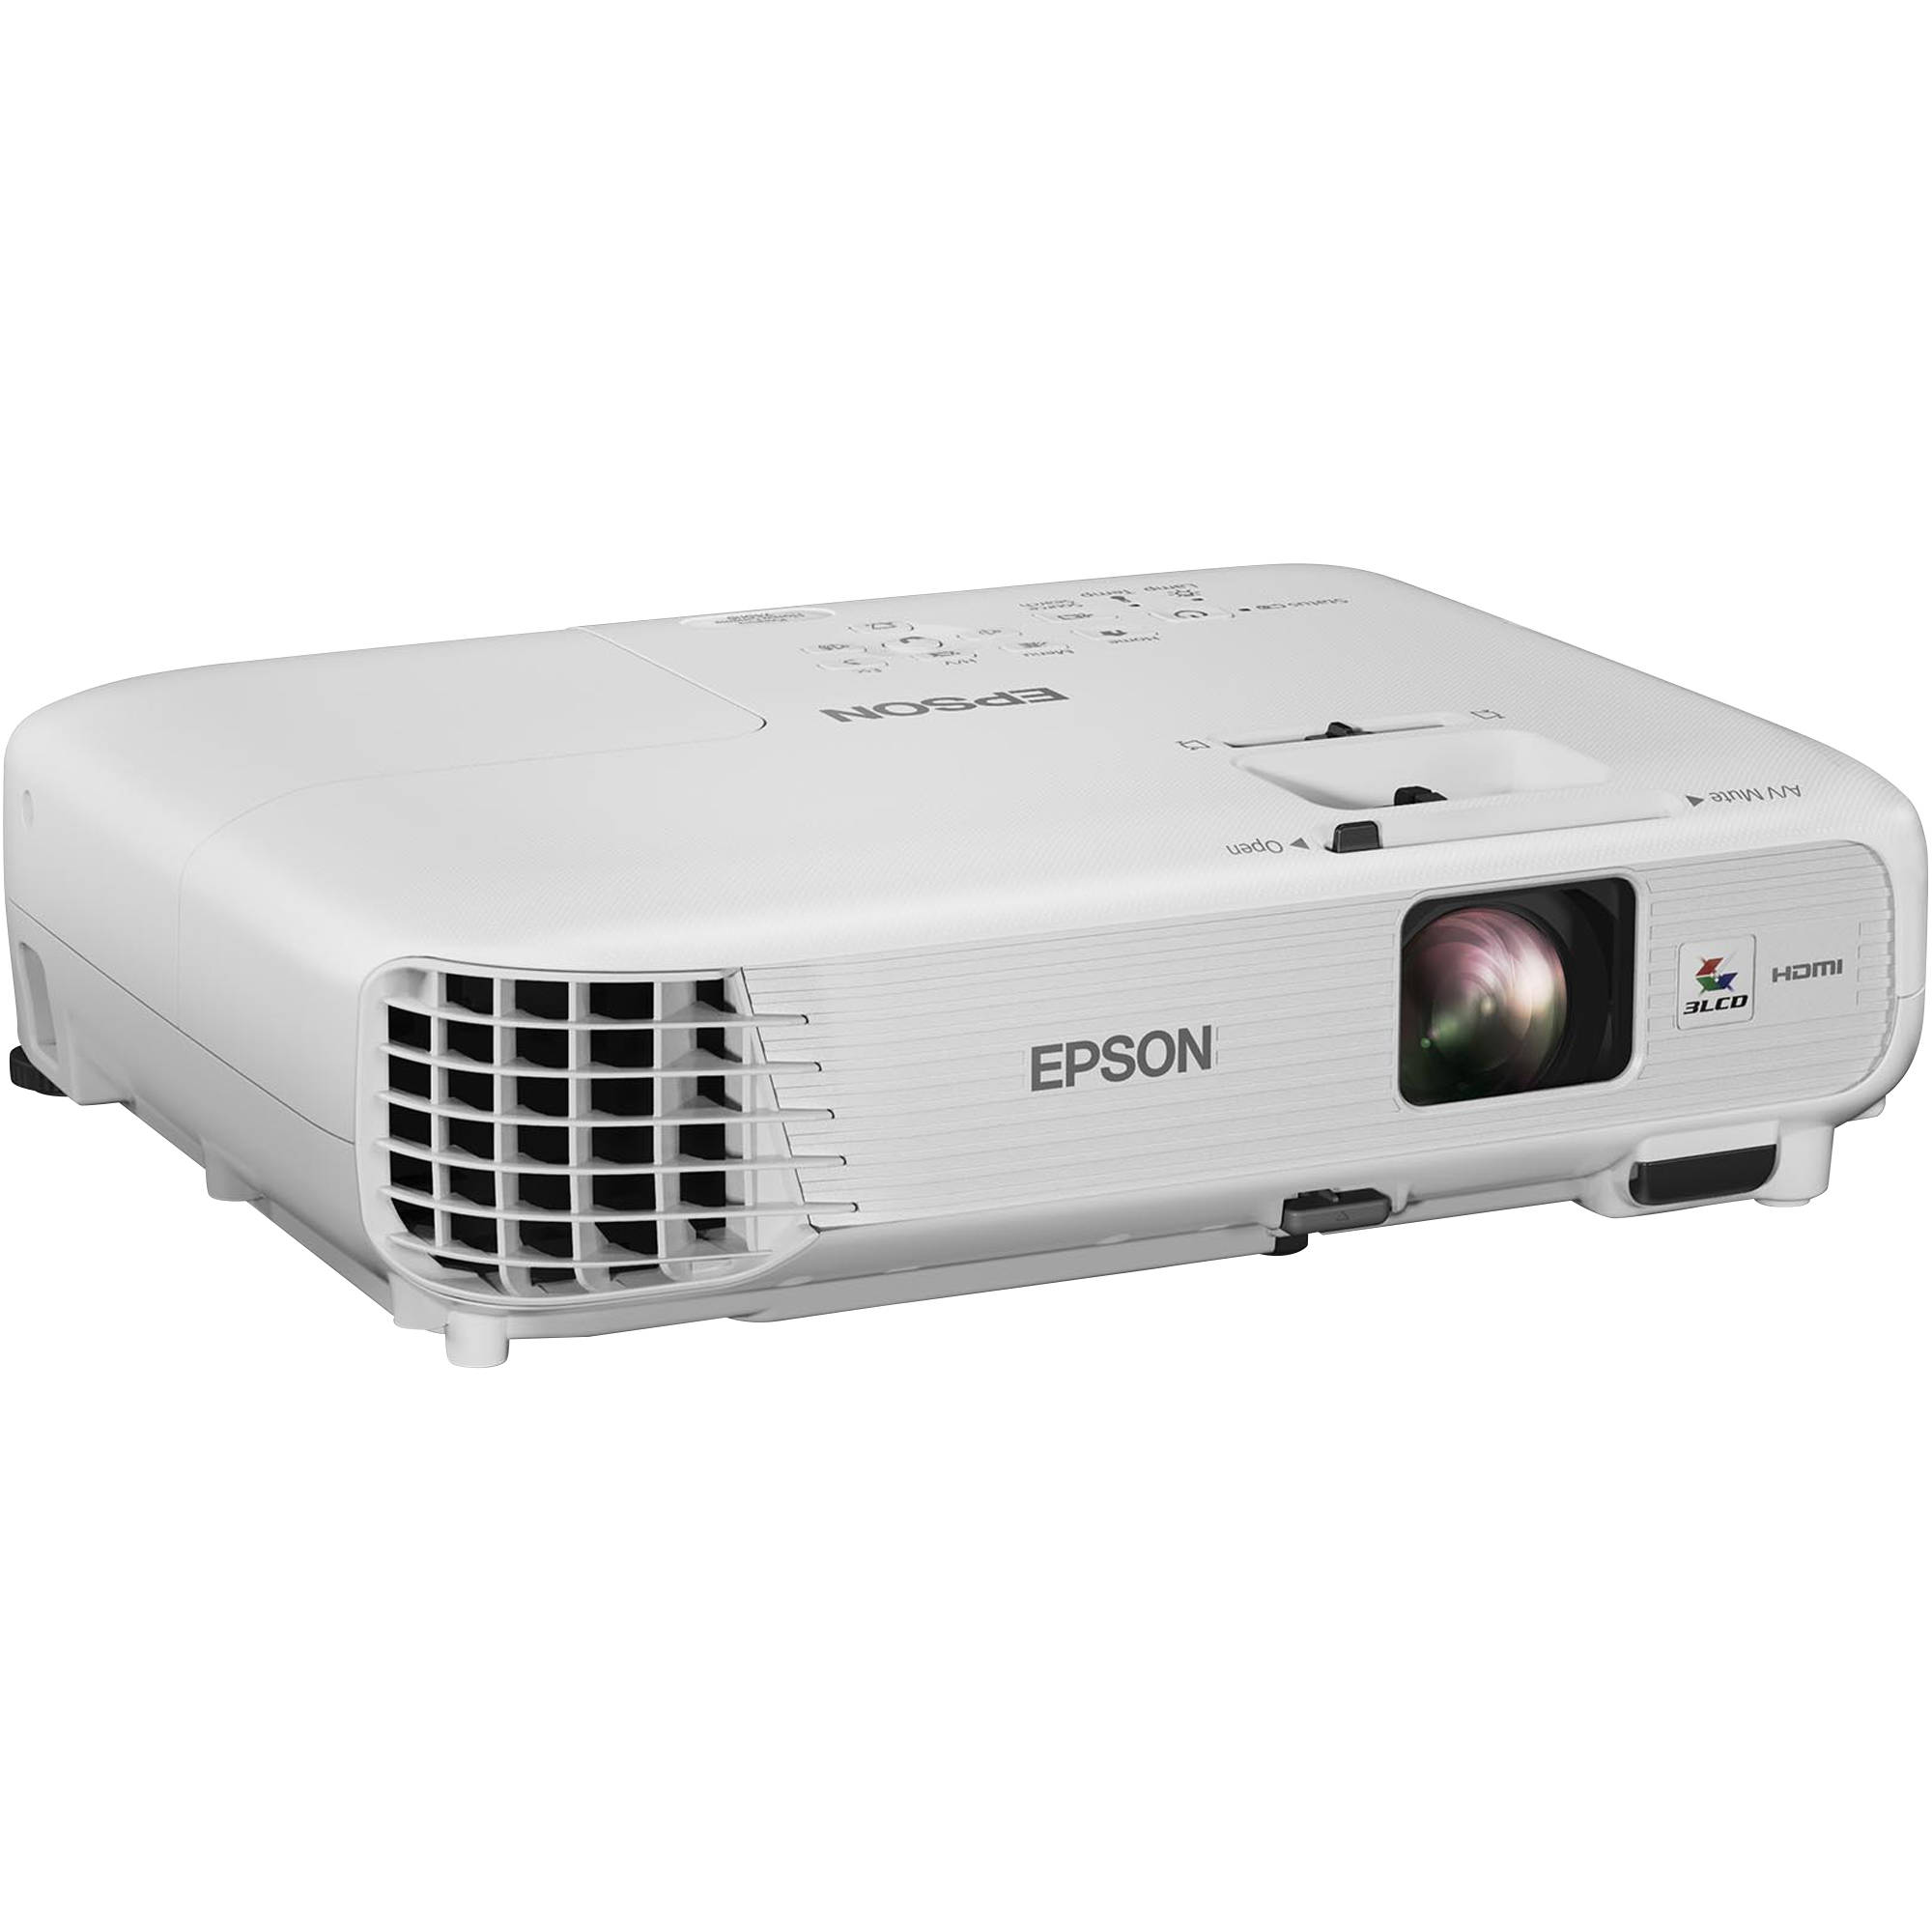 epson_powerlite_home_cinema_740hd_